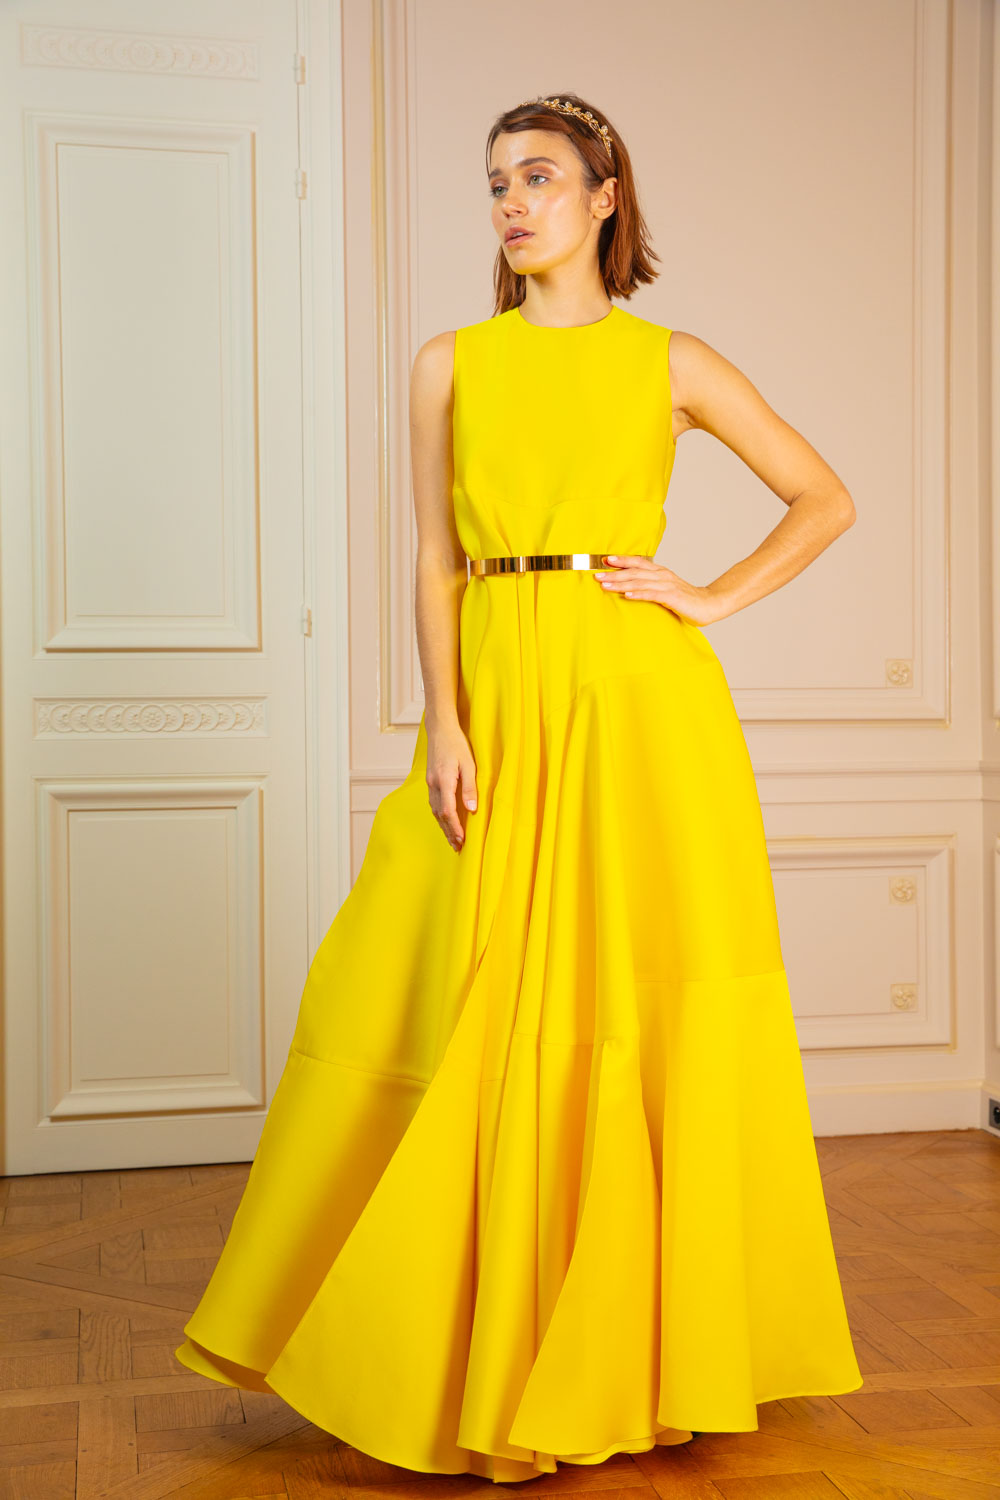 Canary yellow satin drop-waist tiered gown